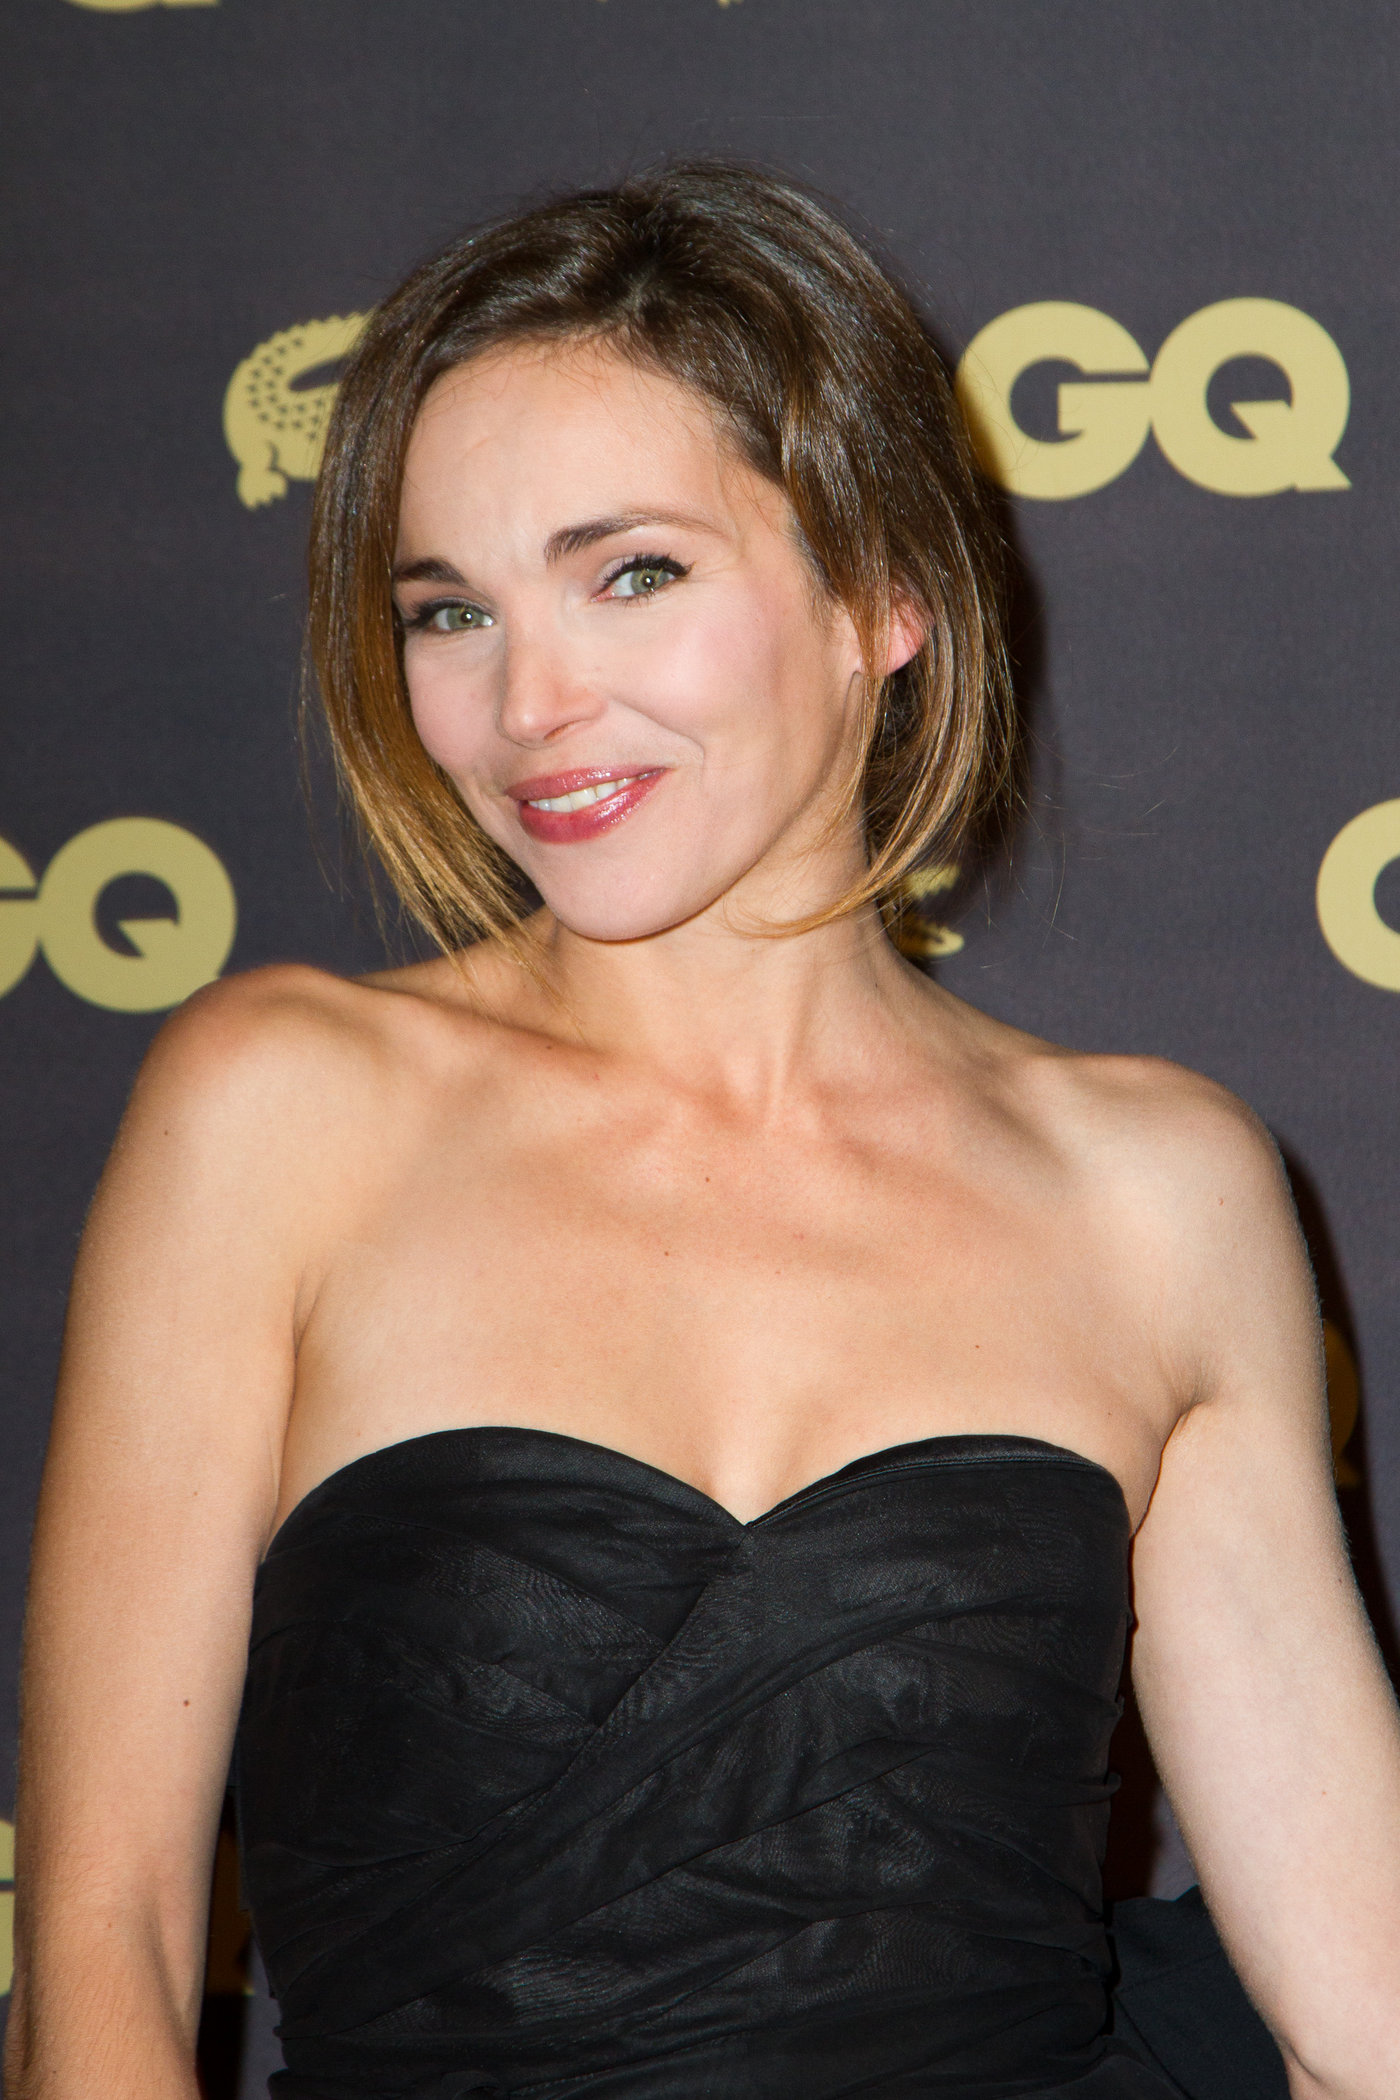 Claire Keim GQ Men Of The Year Awards 2012 in Paris (Jan 16, 2013)